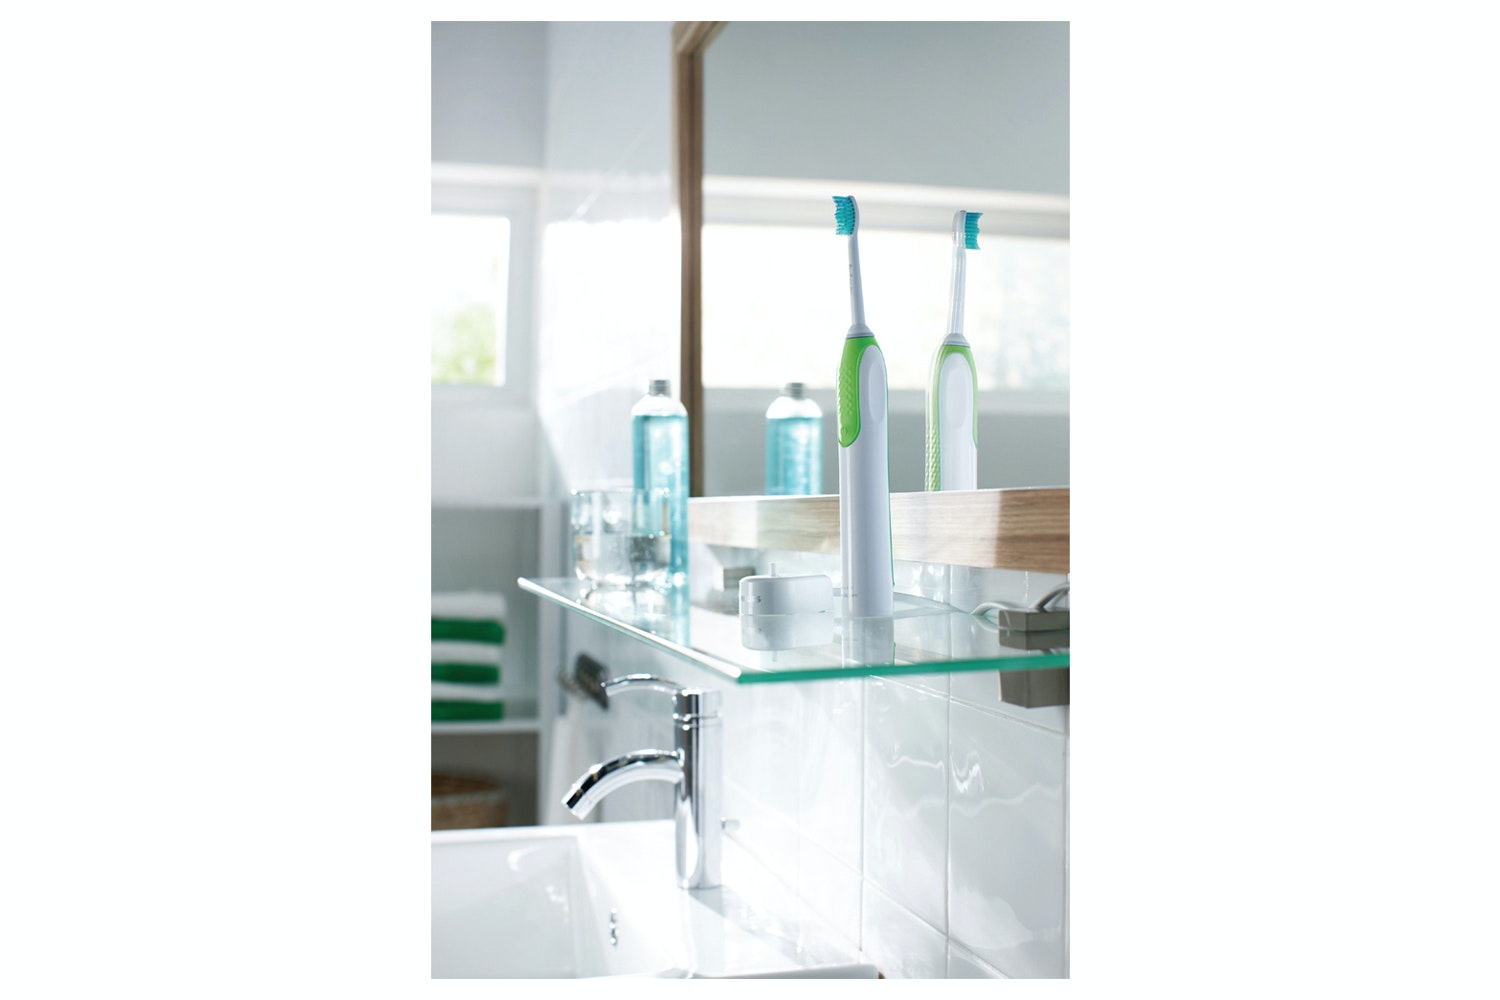 Philips Sonicare 'Power Up' Electric Toothbrush